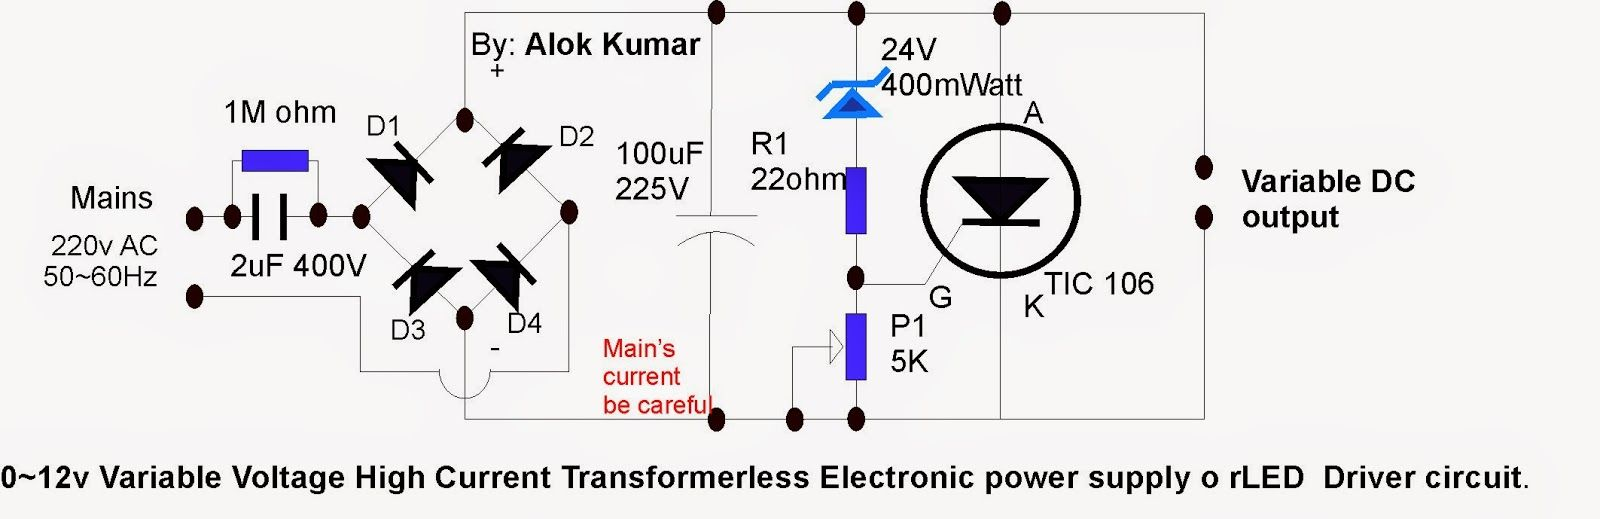 electronic circuits transformerless power supply led drivers battery chargers solar circuits how to make 0 to 12v variable high current transformerless  [ 1600 x 519 Pixel ]